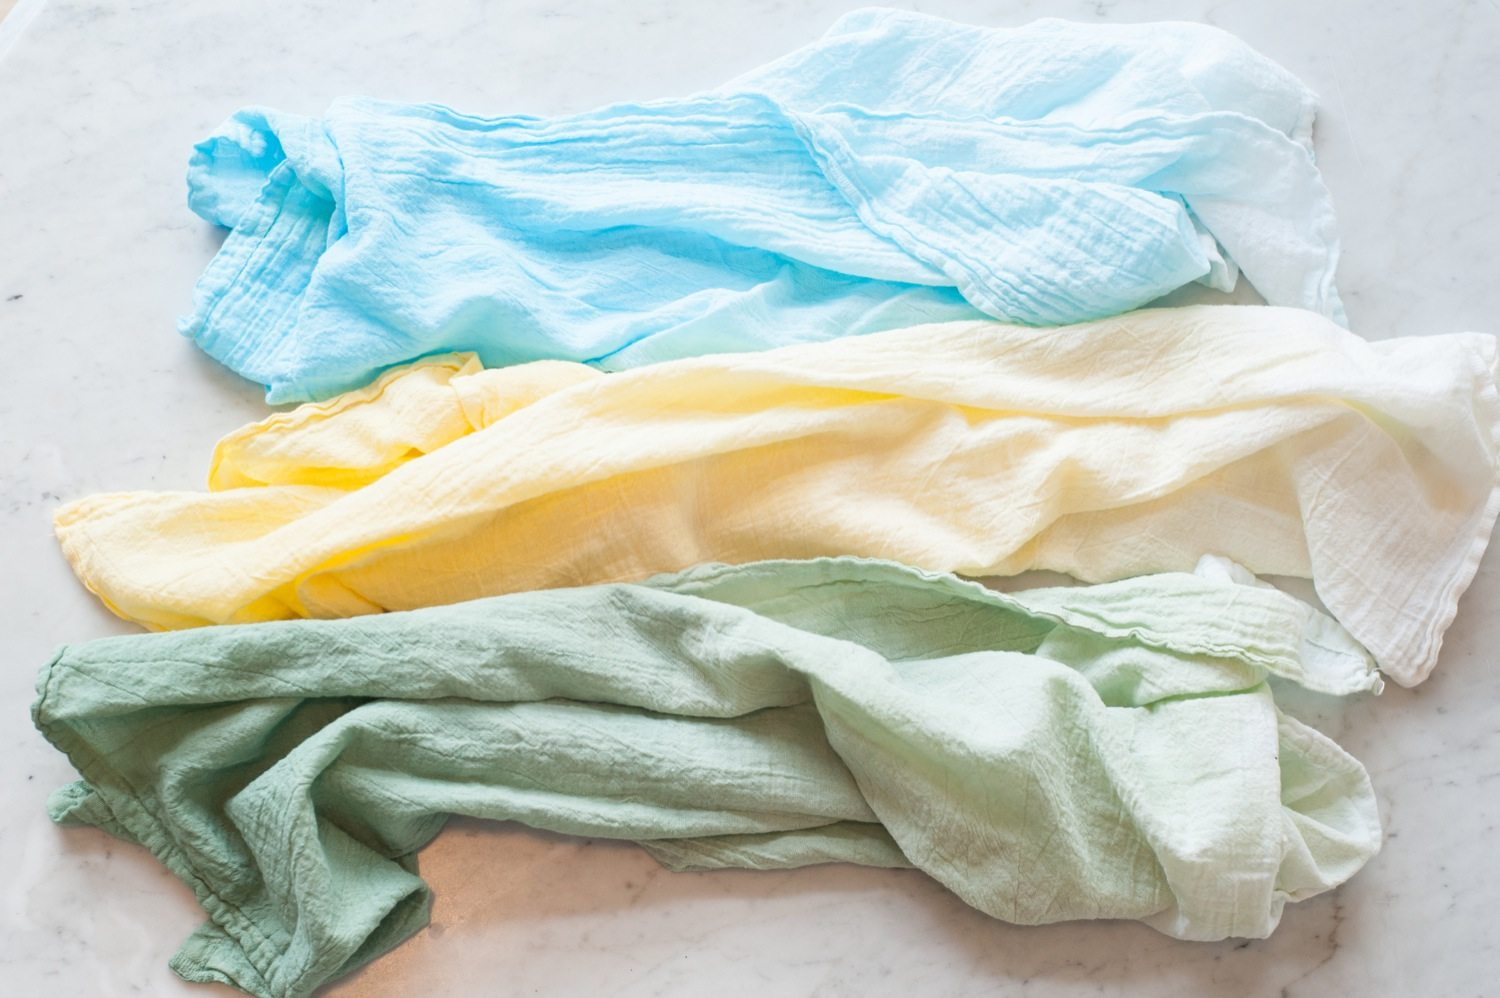 DIY Ombre Flour Sack Towels - The Sweetest Occasion